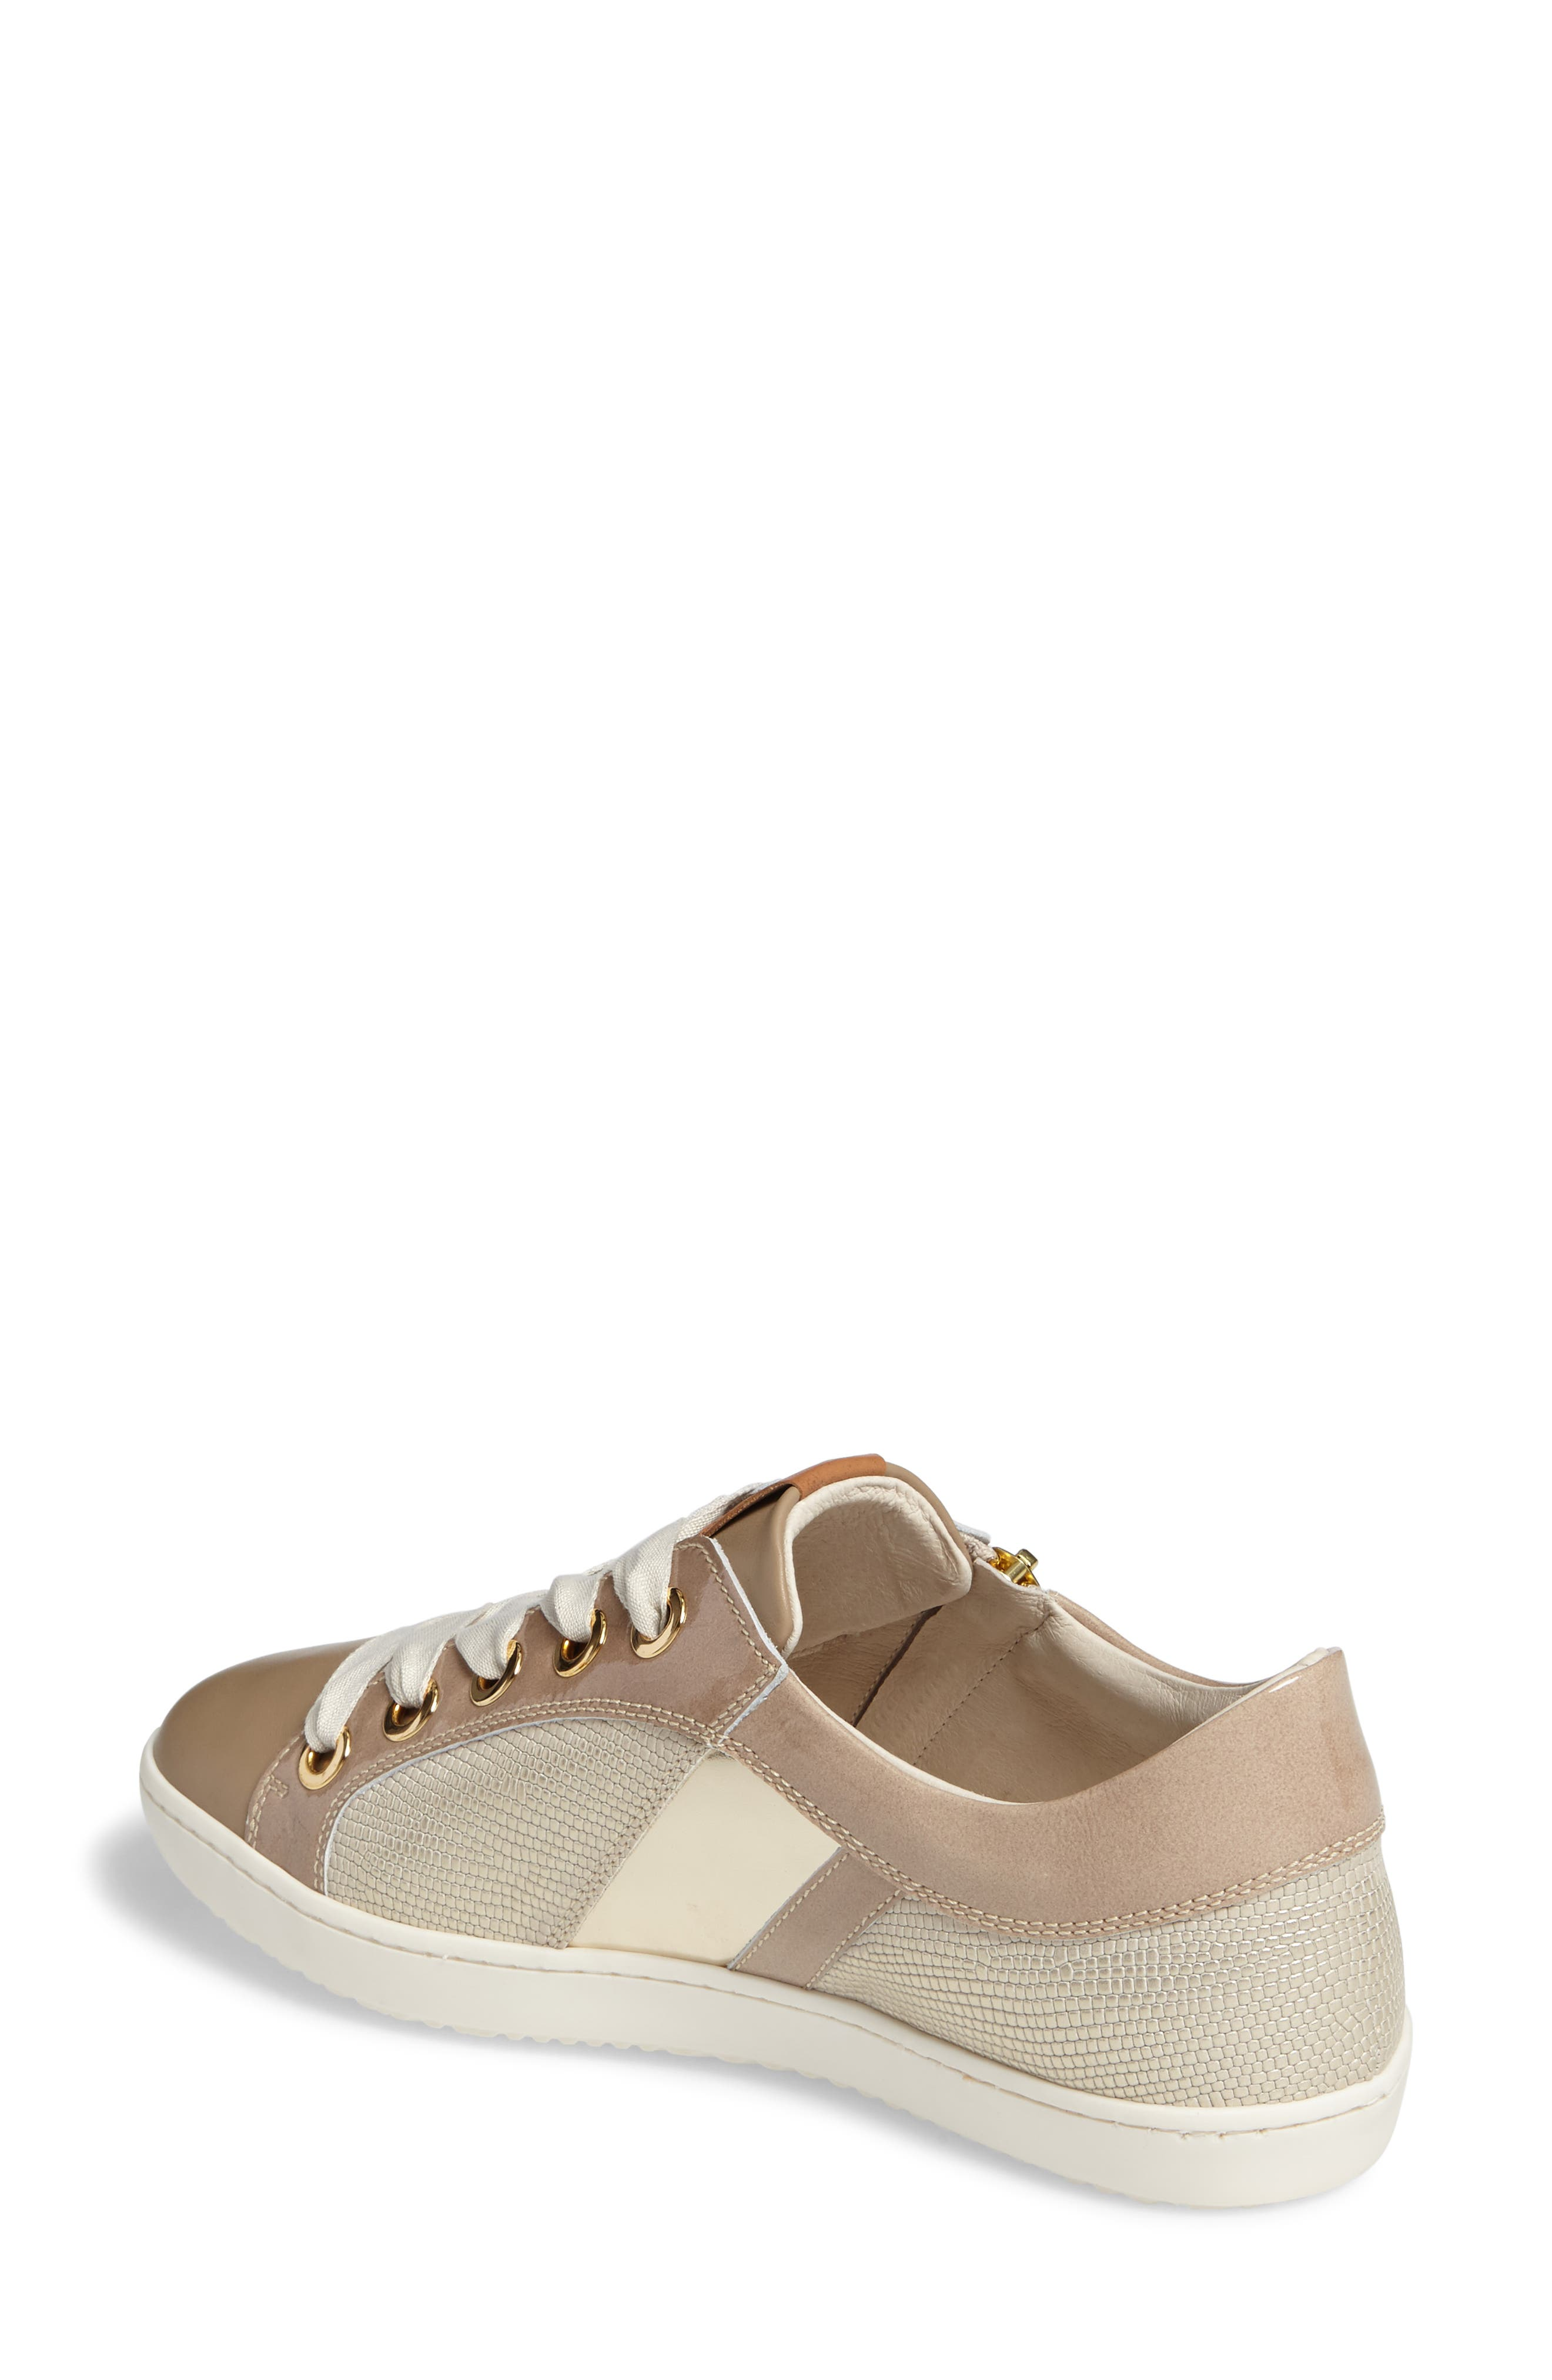 May Sneaker,                             Alternate thumbnail 2, color,                             Nude/ Platino Leather